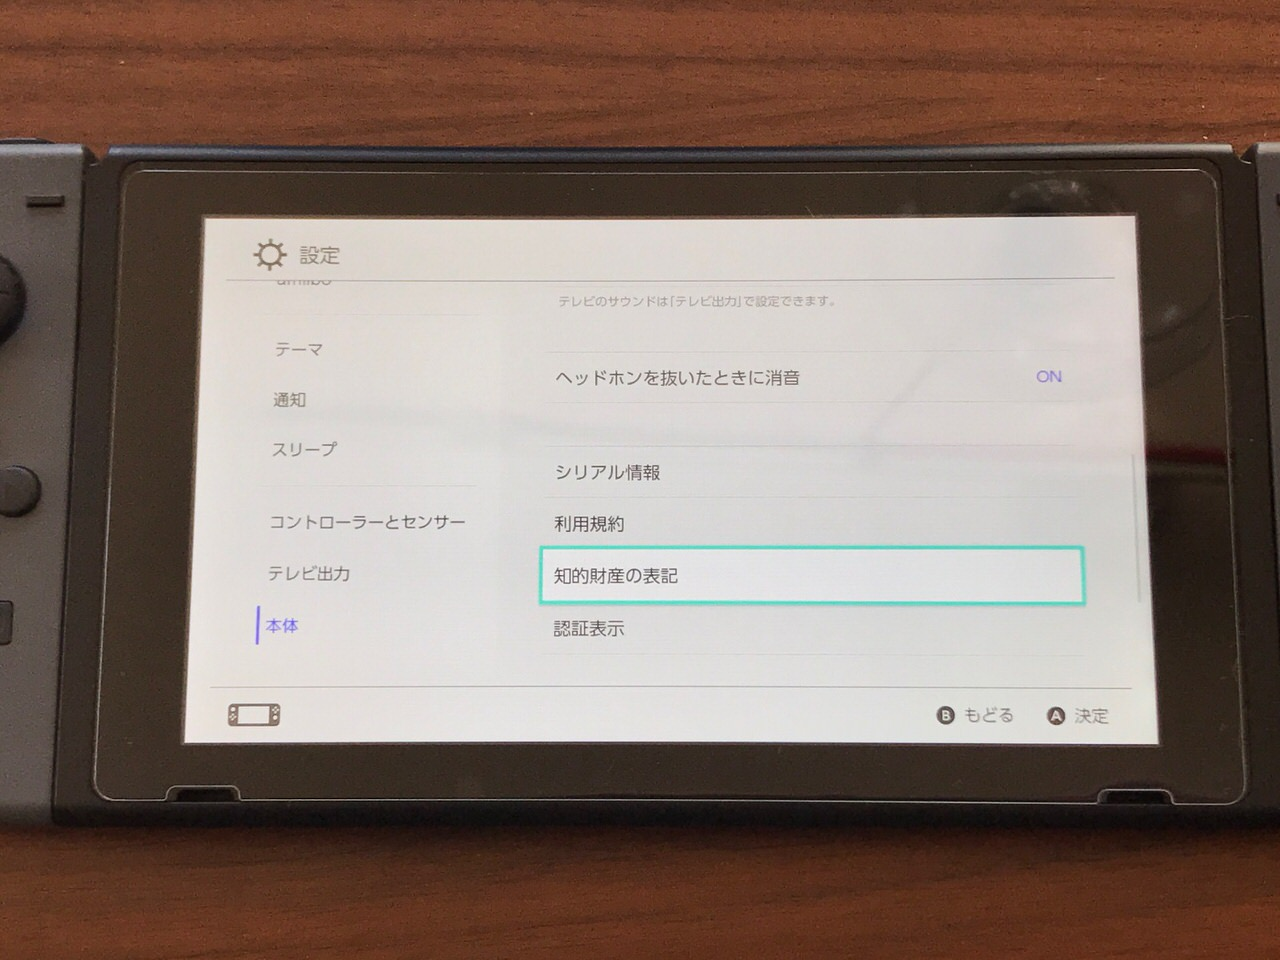 Nintendo switch freeBSD 93434